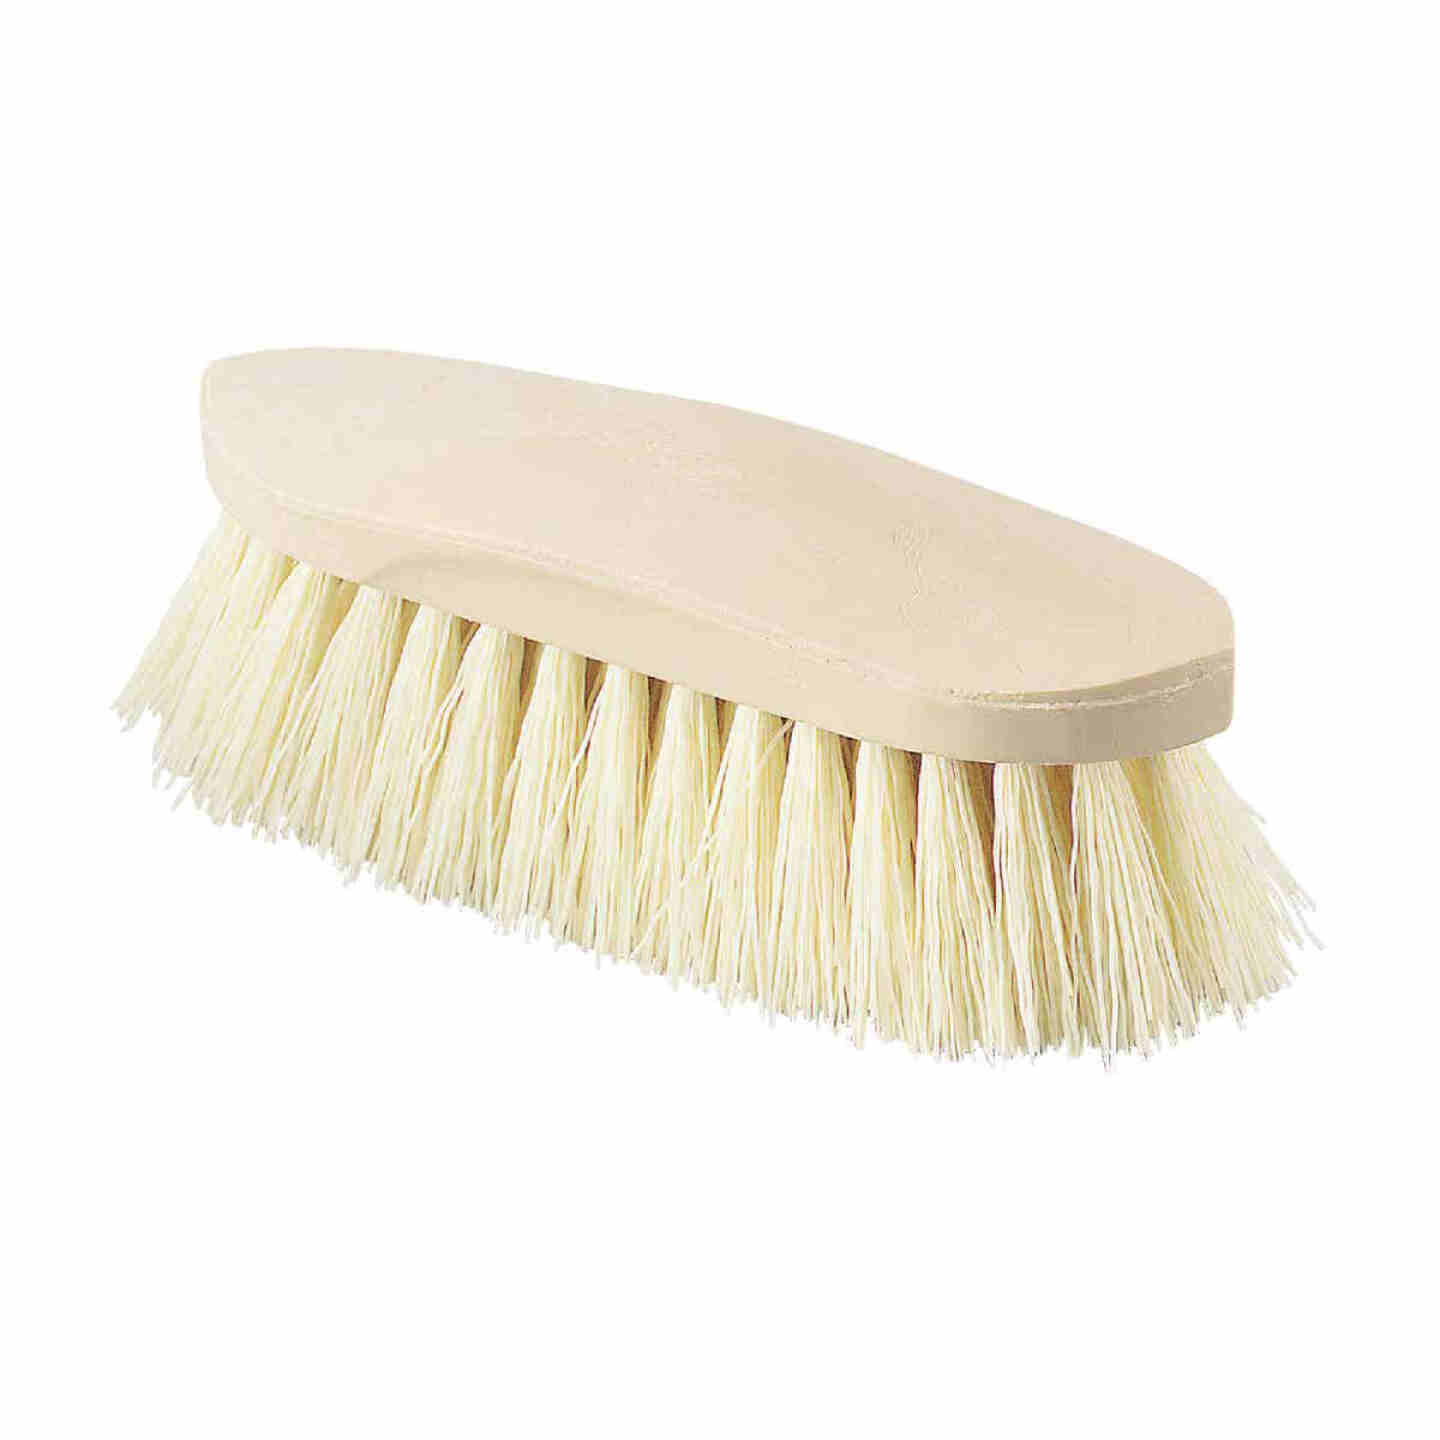 Decker Synthetic Rice Root Bristles 2 In. Trim Size Grip-Fit Stiff Grooming Brush Image 1